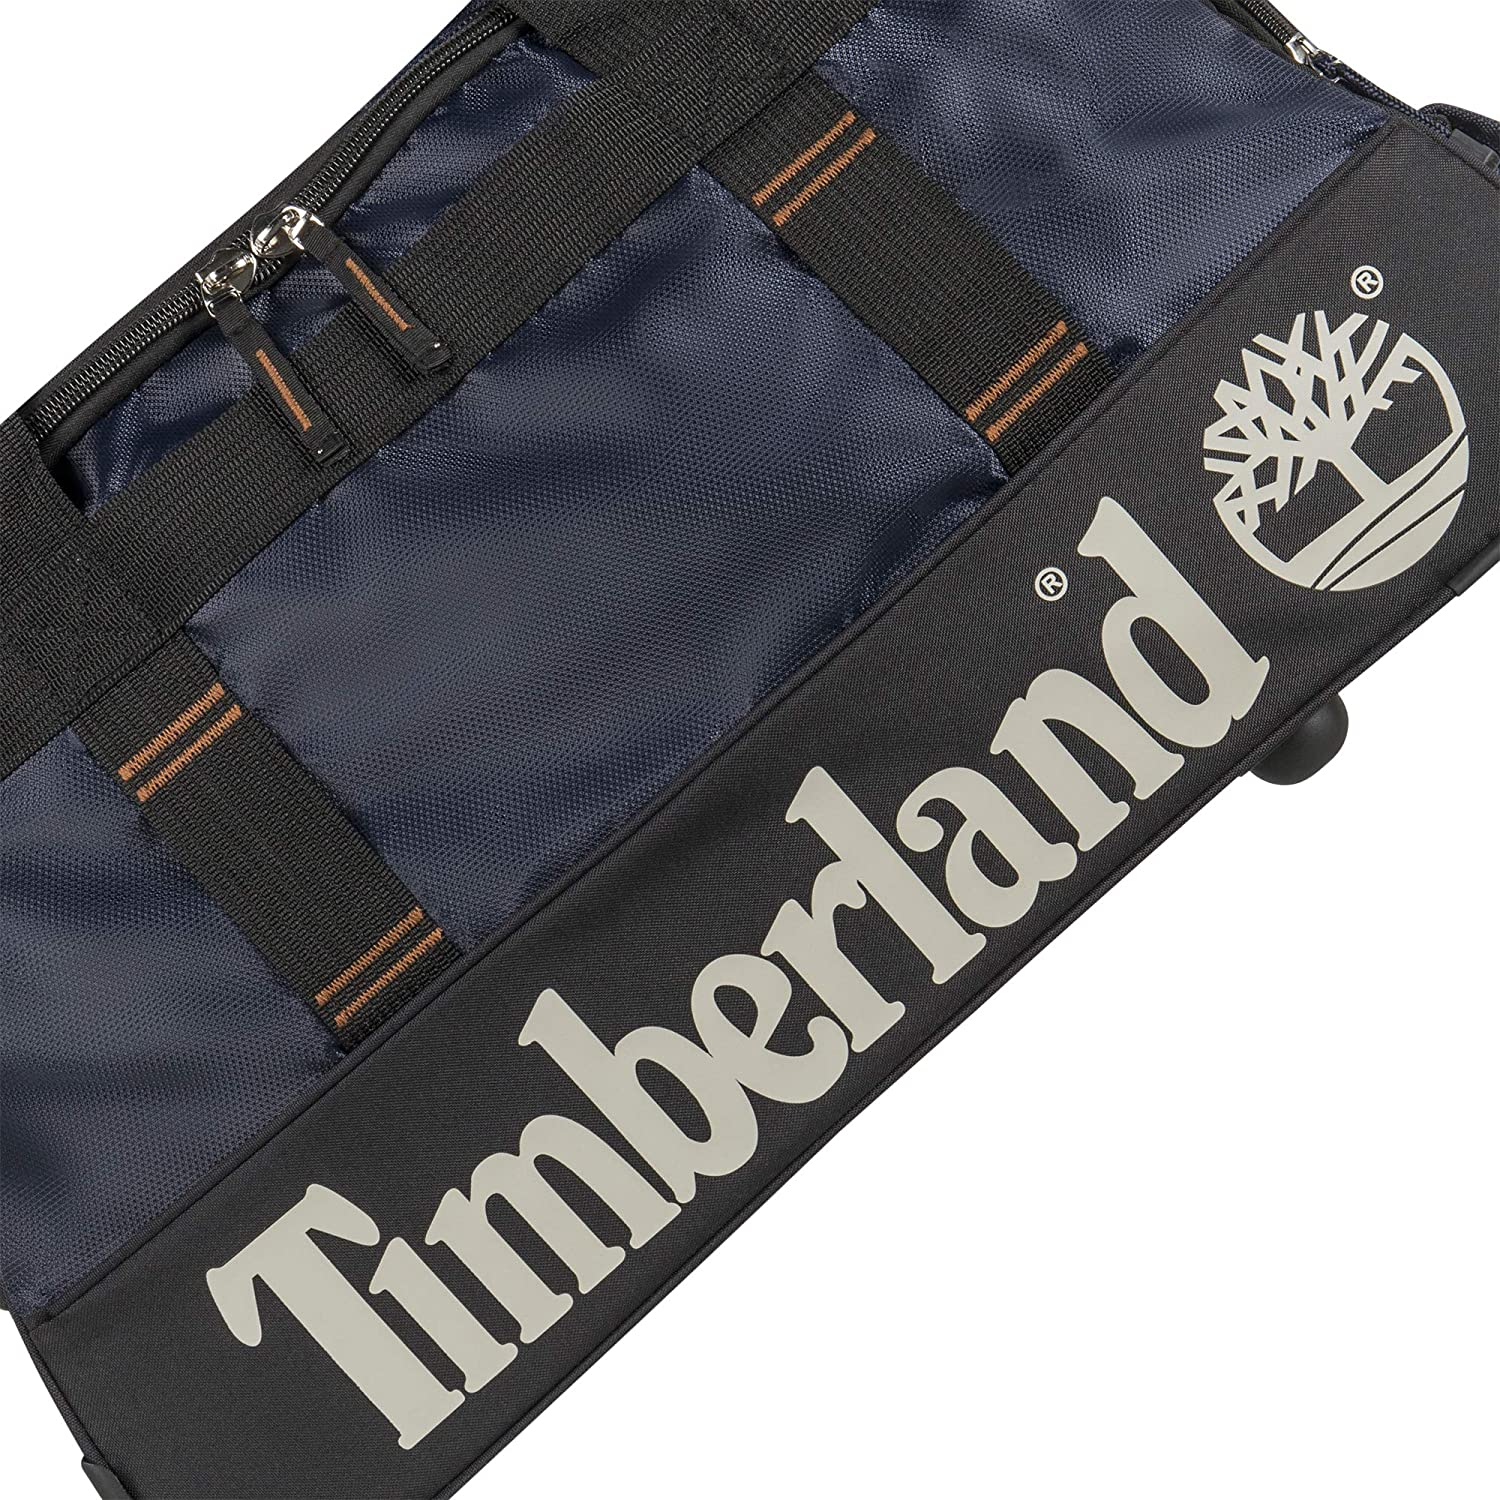 Timberland Wheeled Duffle Bag Carry On Check In Lightweight Rolling Luggage Overnight Travel Bag Suitcase for Men